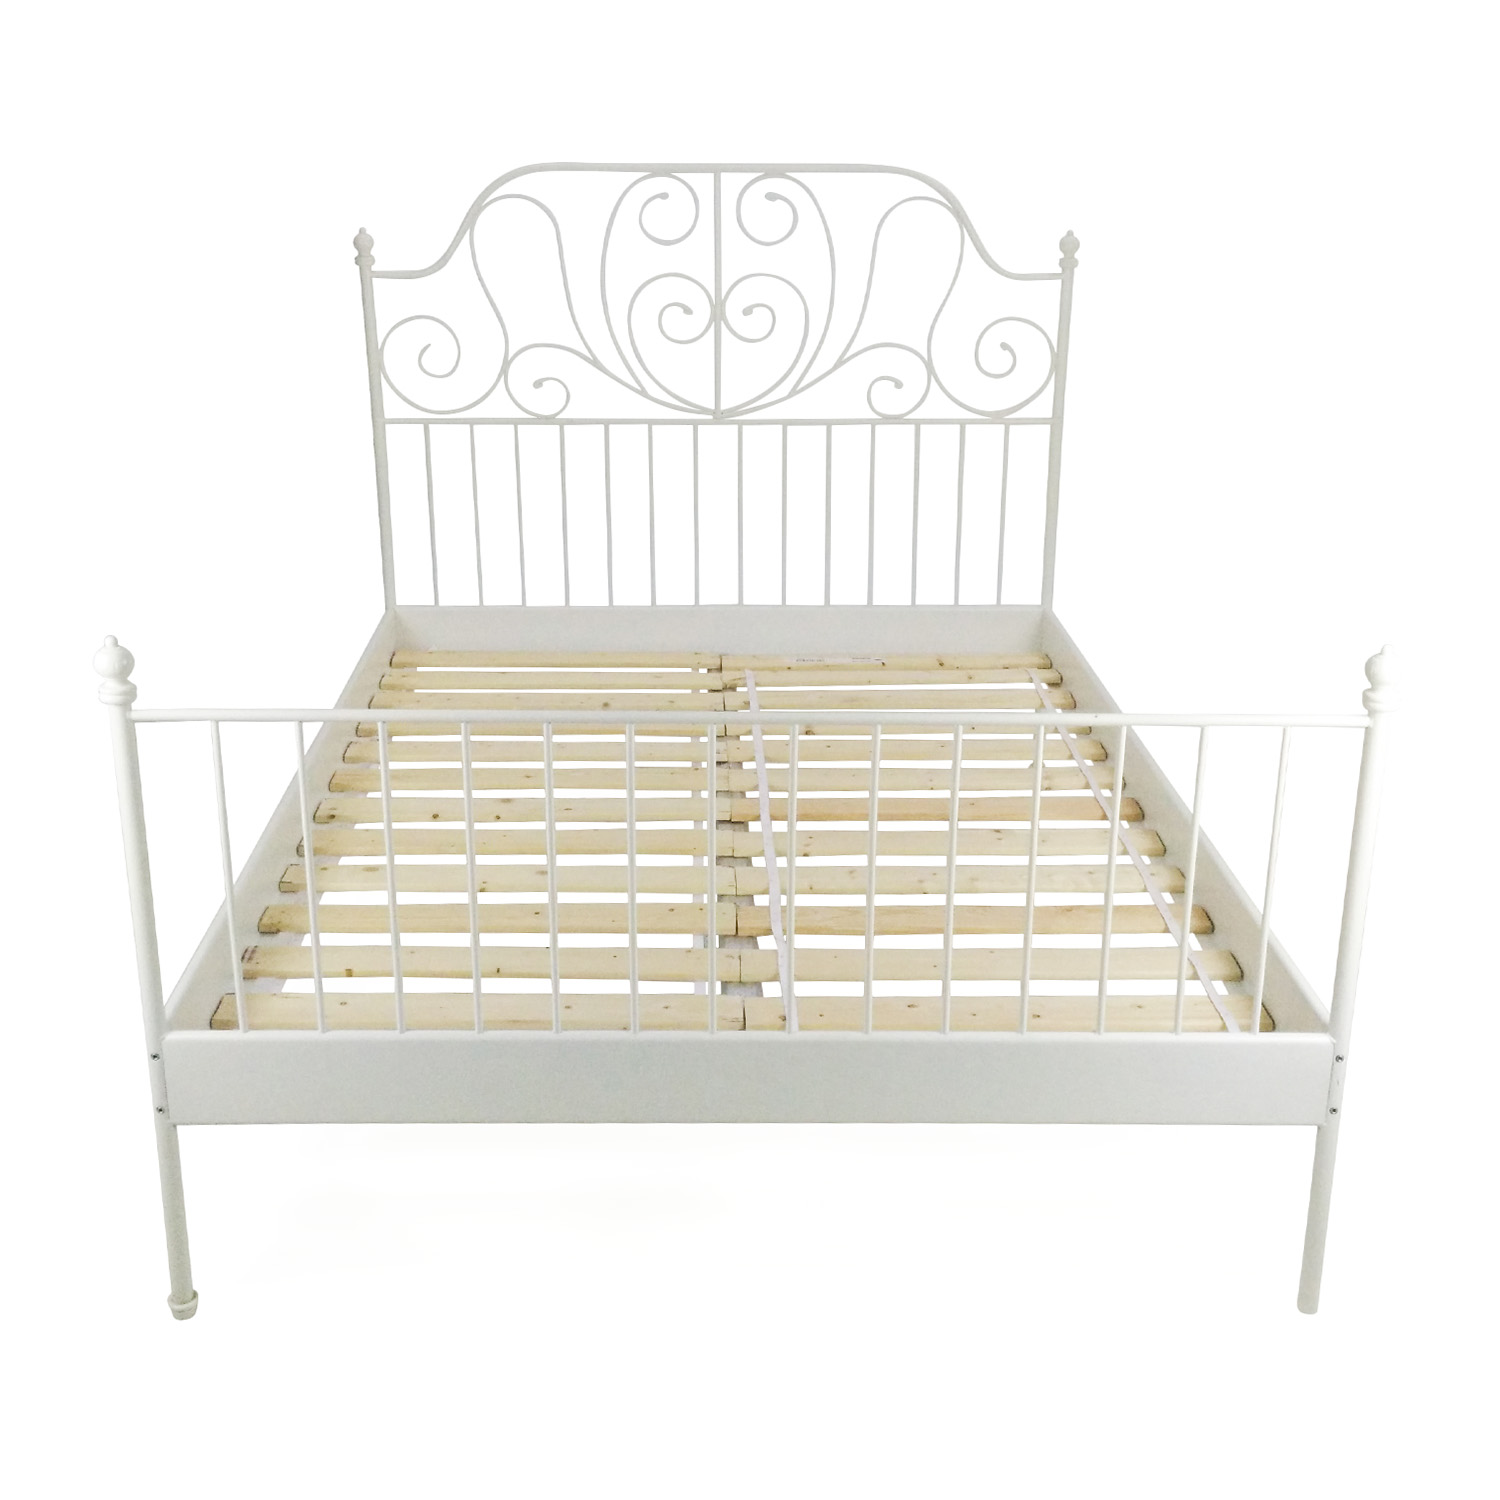 buy Ikea IKEA Queen Sized Iron Bed Frame online